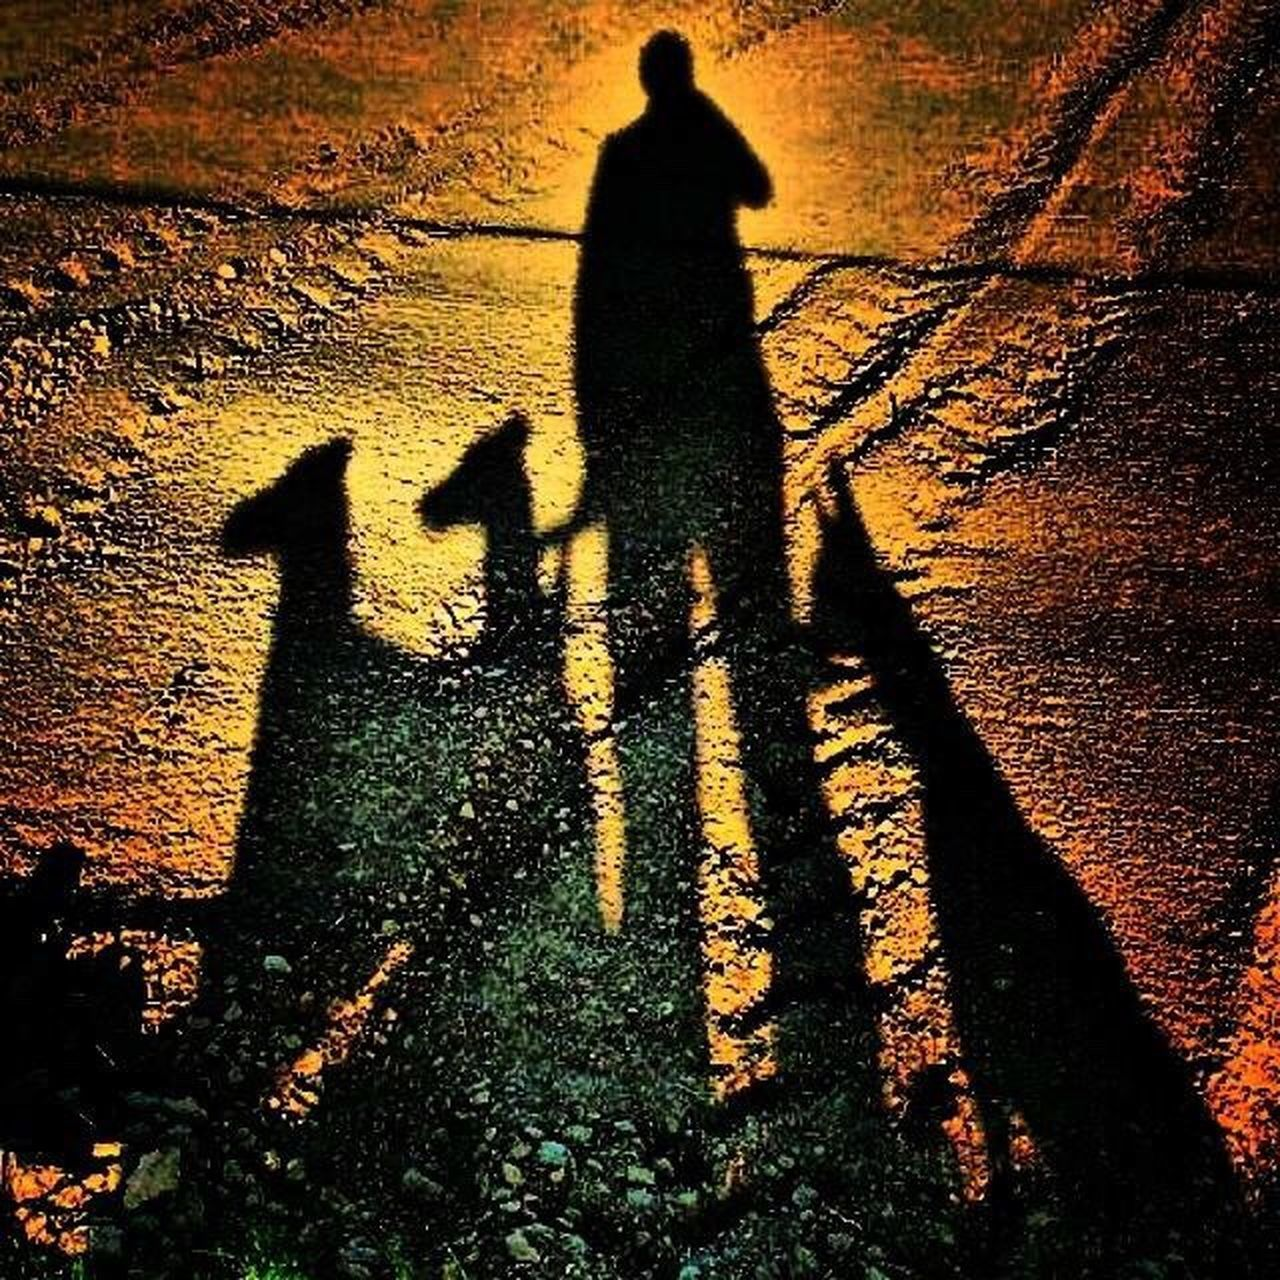 shadow, focus on shadow, long shadow - shadow, sunlight, silhouette, real people, high angle view, leisure activity, outdoors, day, lifestyles, nature, one person, men, mammal, people